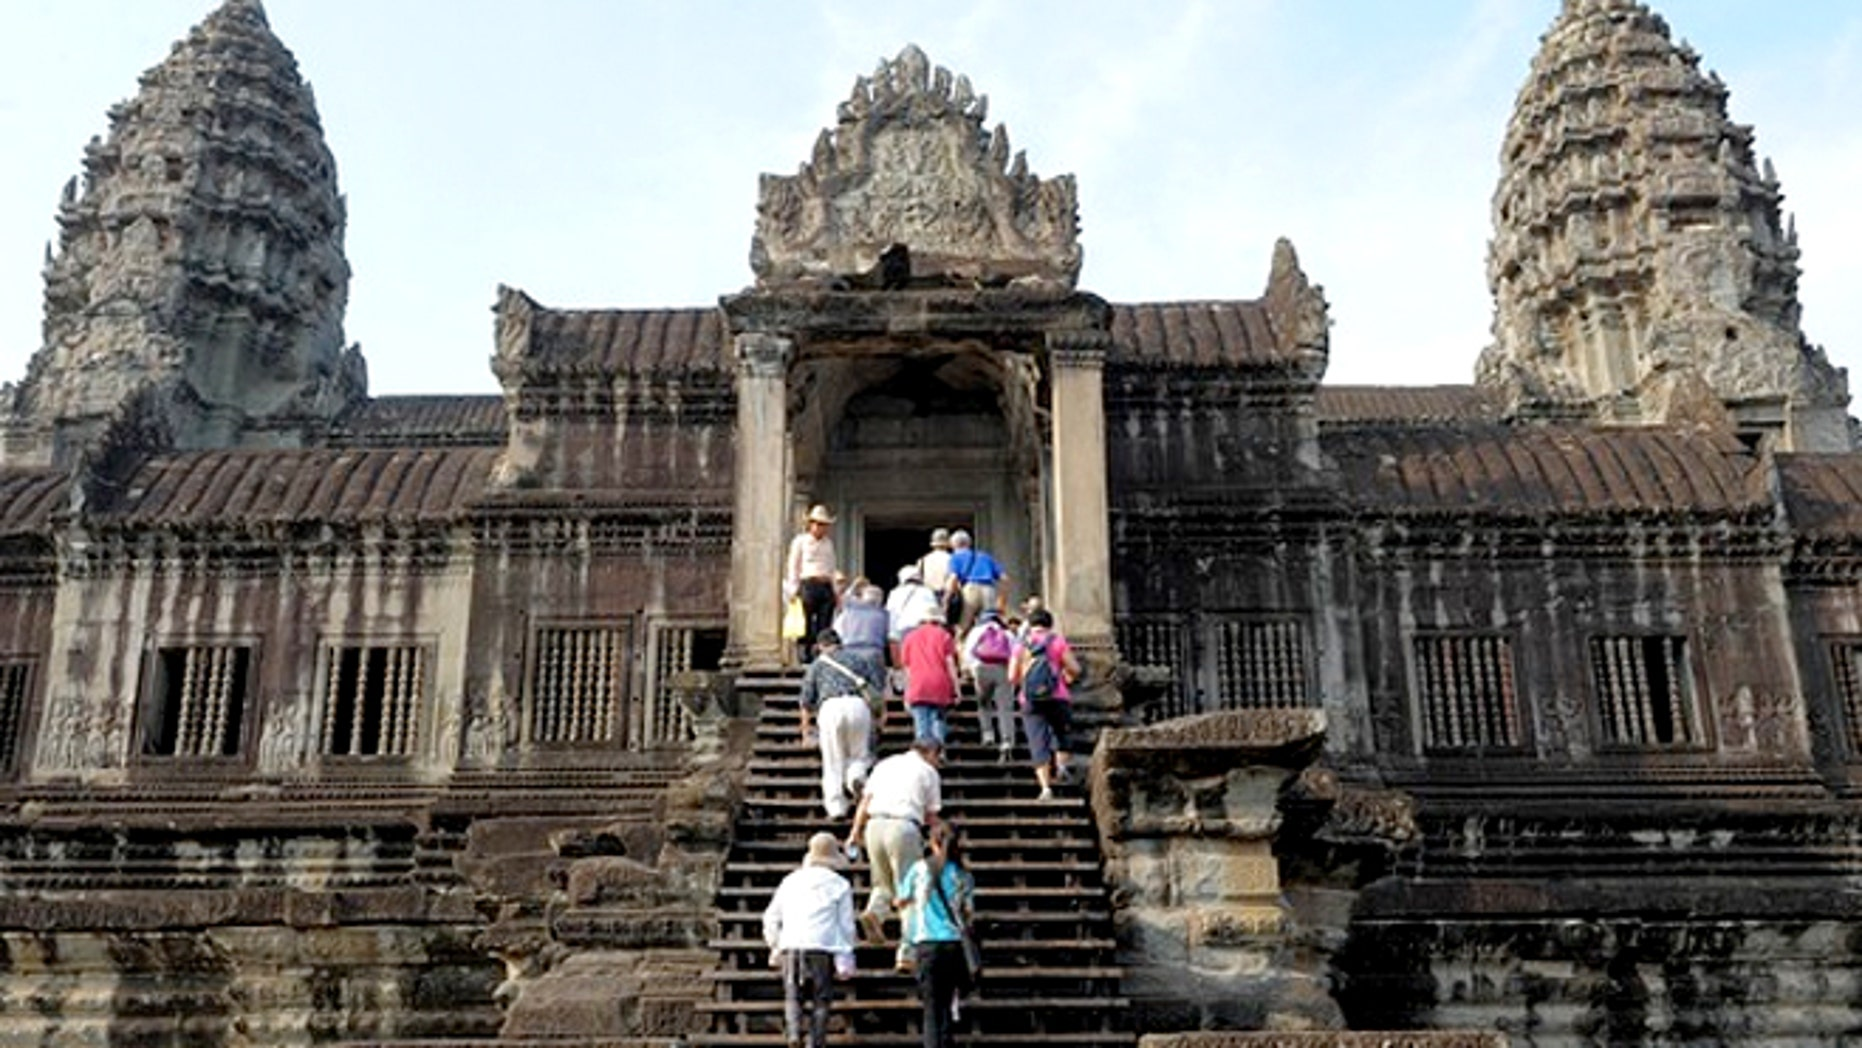 Tourists at the Angkor Wat temples in Cambodia.